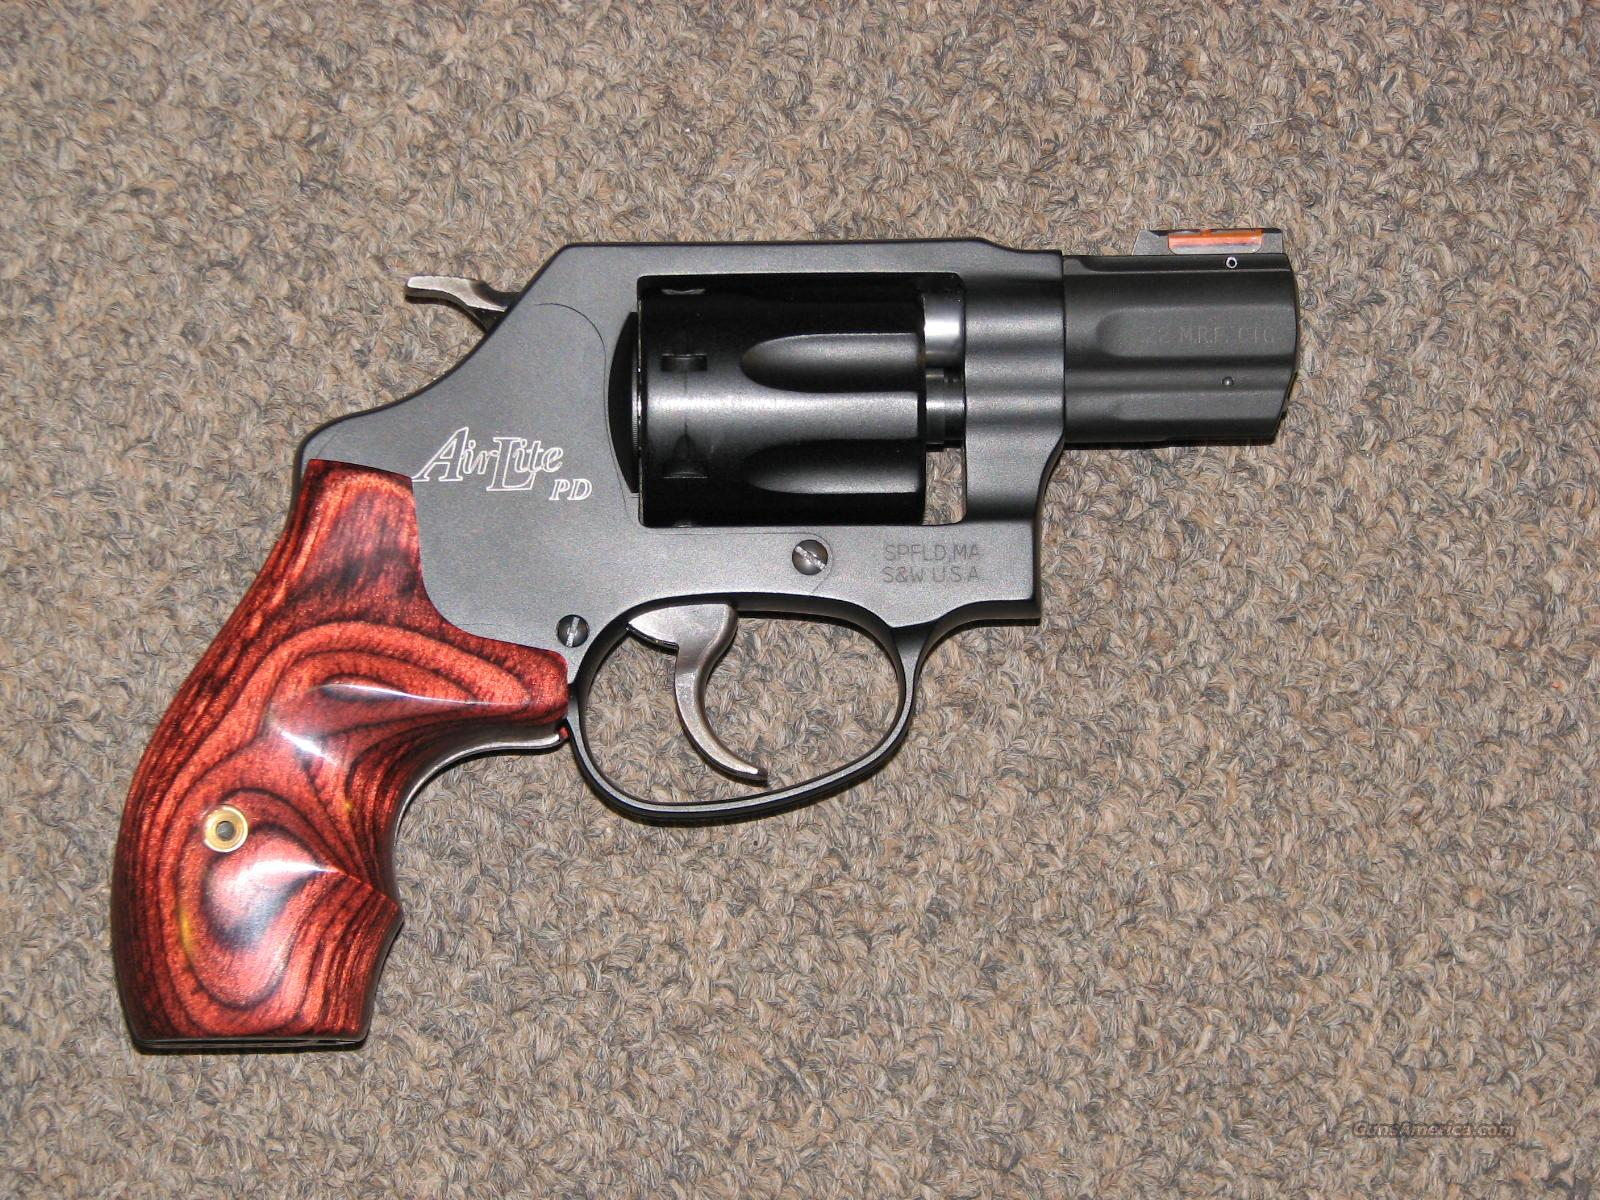 SMITH & WESSON 351 PD REVOLVER .22 MAG - NEW!  Guns > Pistols > Smith & Wesson Revolvers > Pocket Pistols